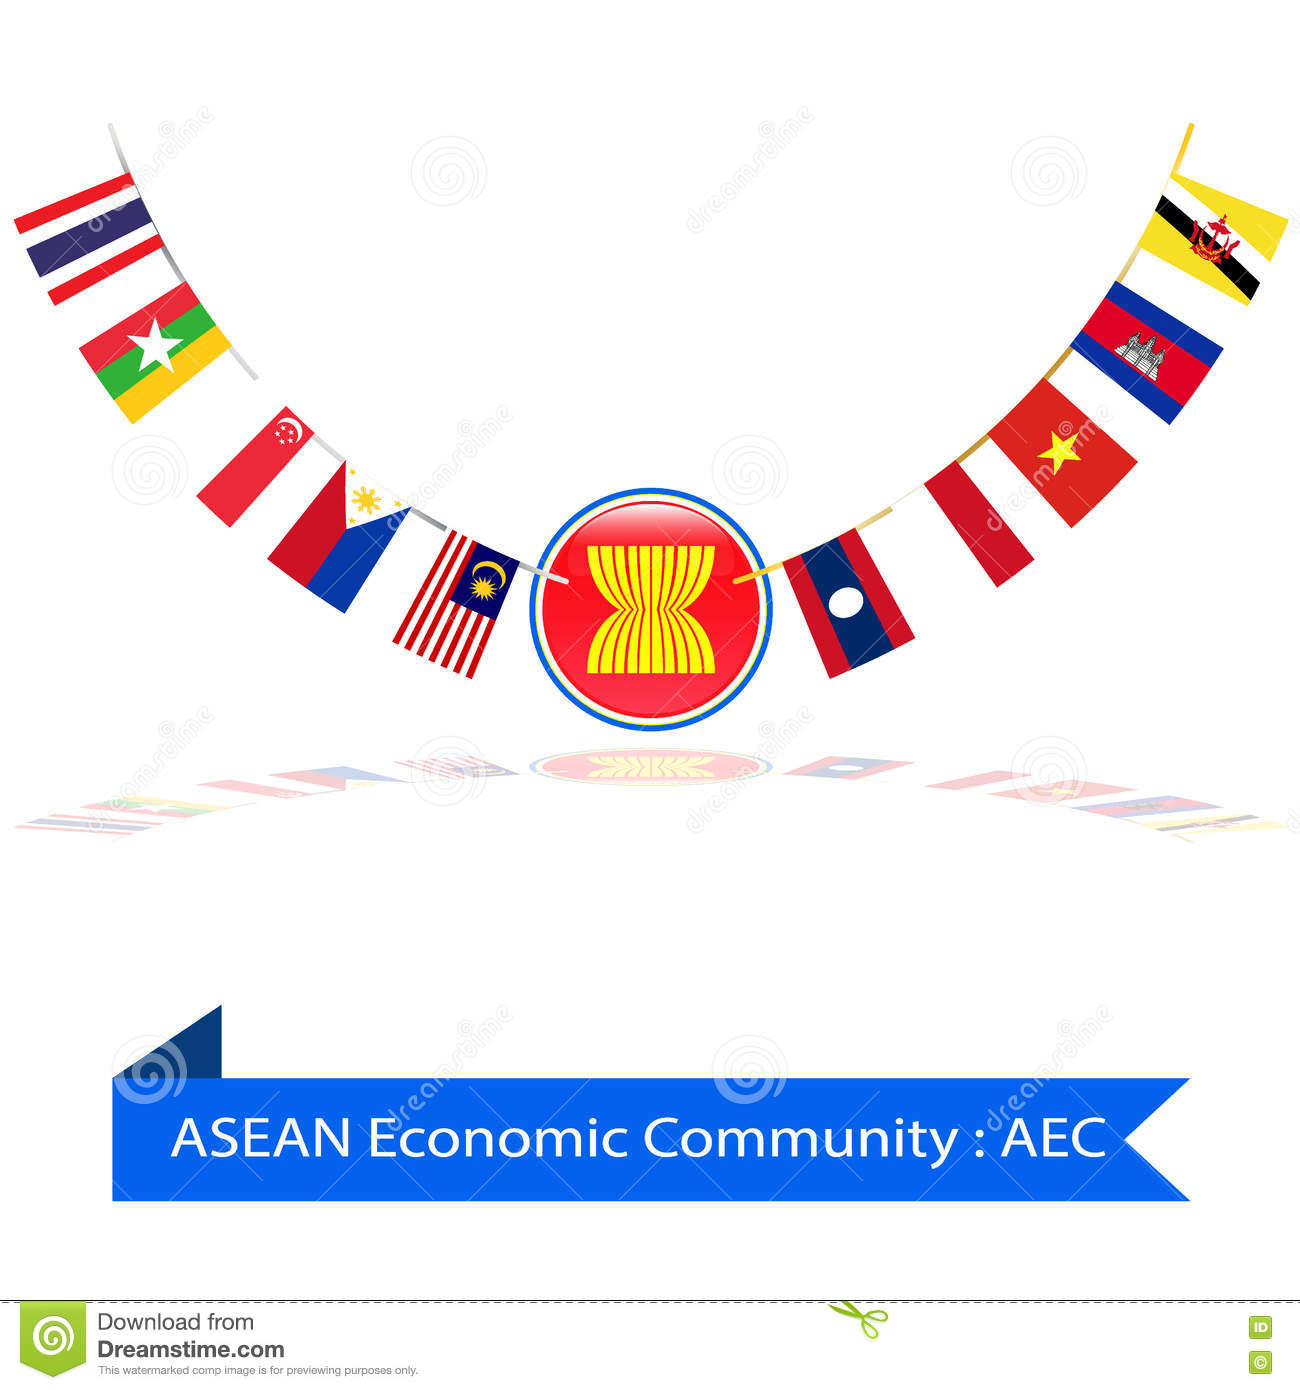 The ASEAN Economic Community: what you need to know